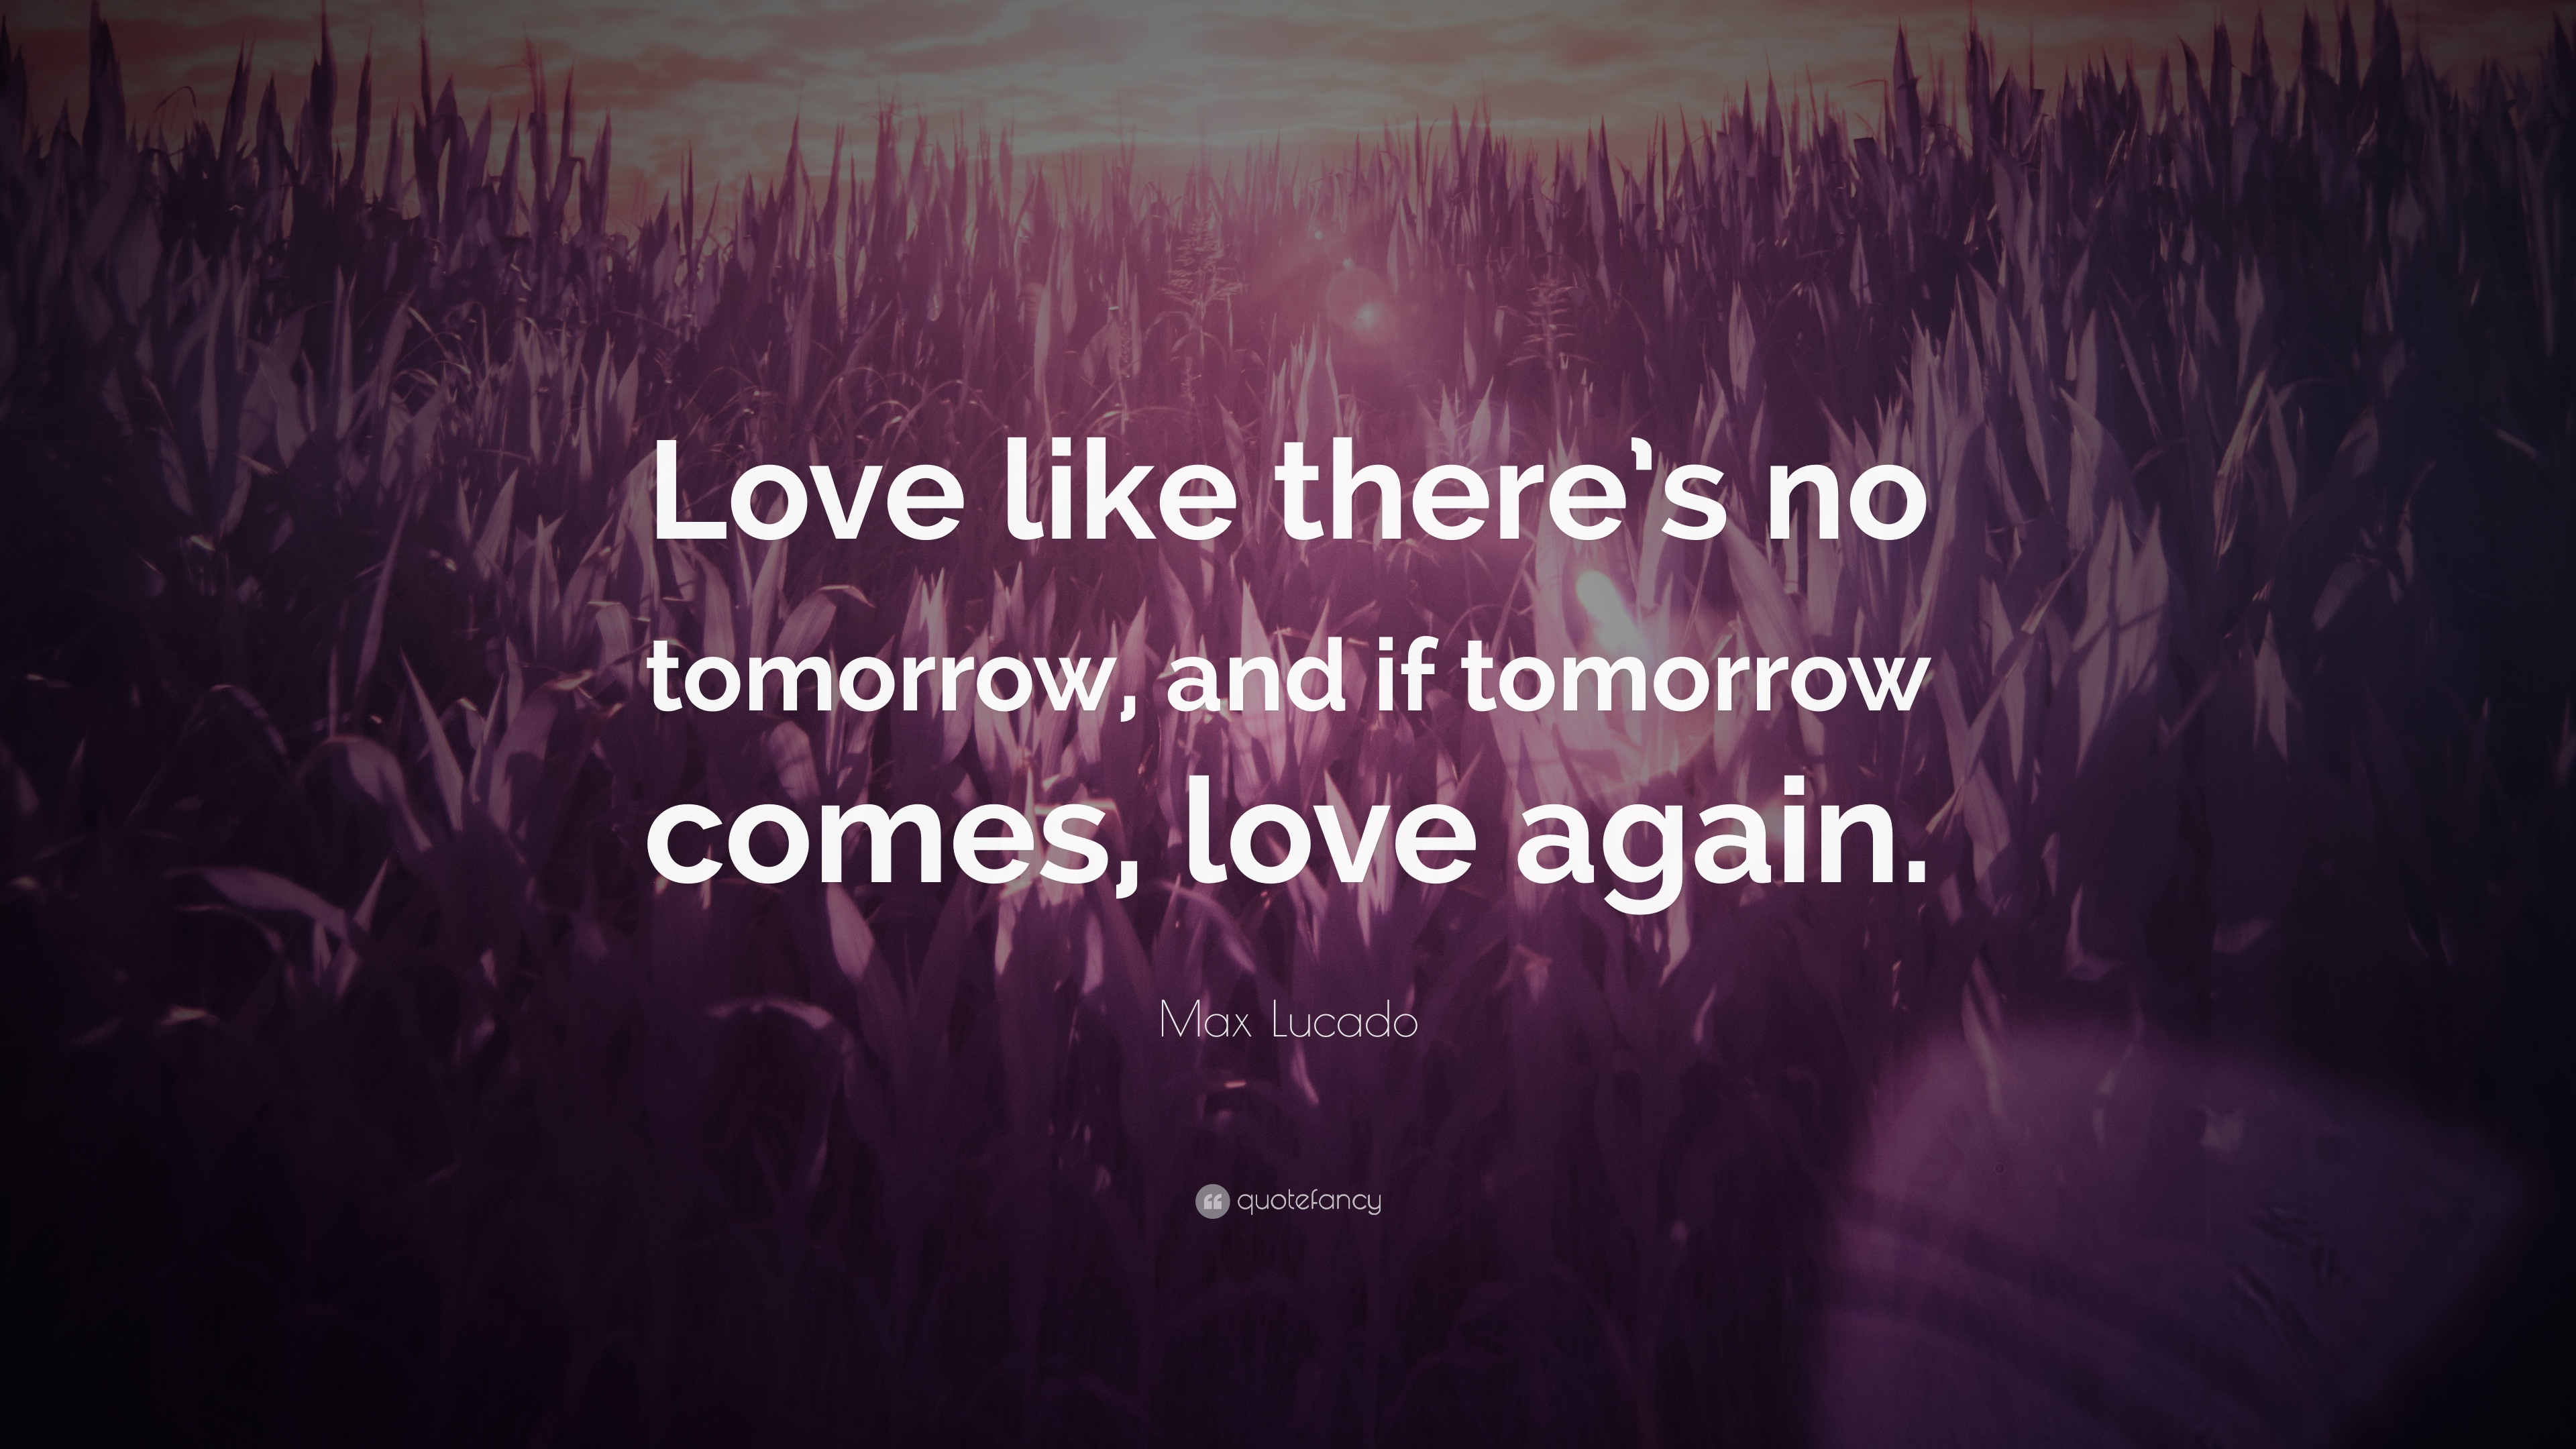 Max Lucado Quote: U201cLove Like Thereu0027s No Tomorrow, And If Tomorrow Comes,